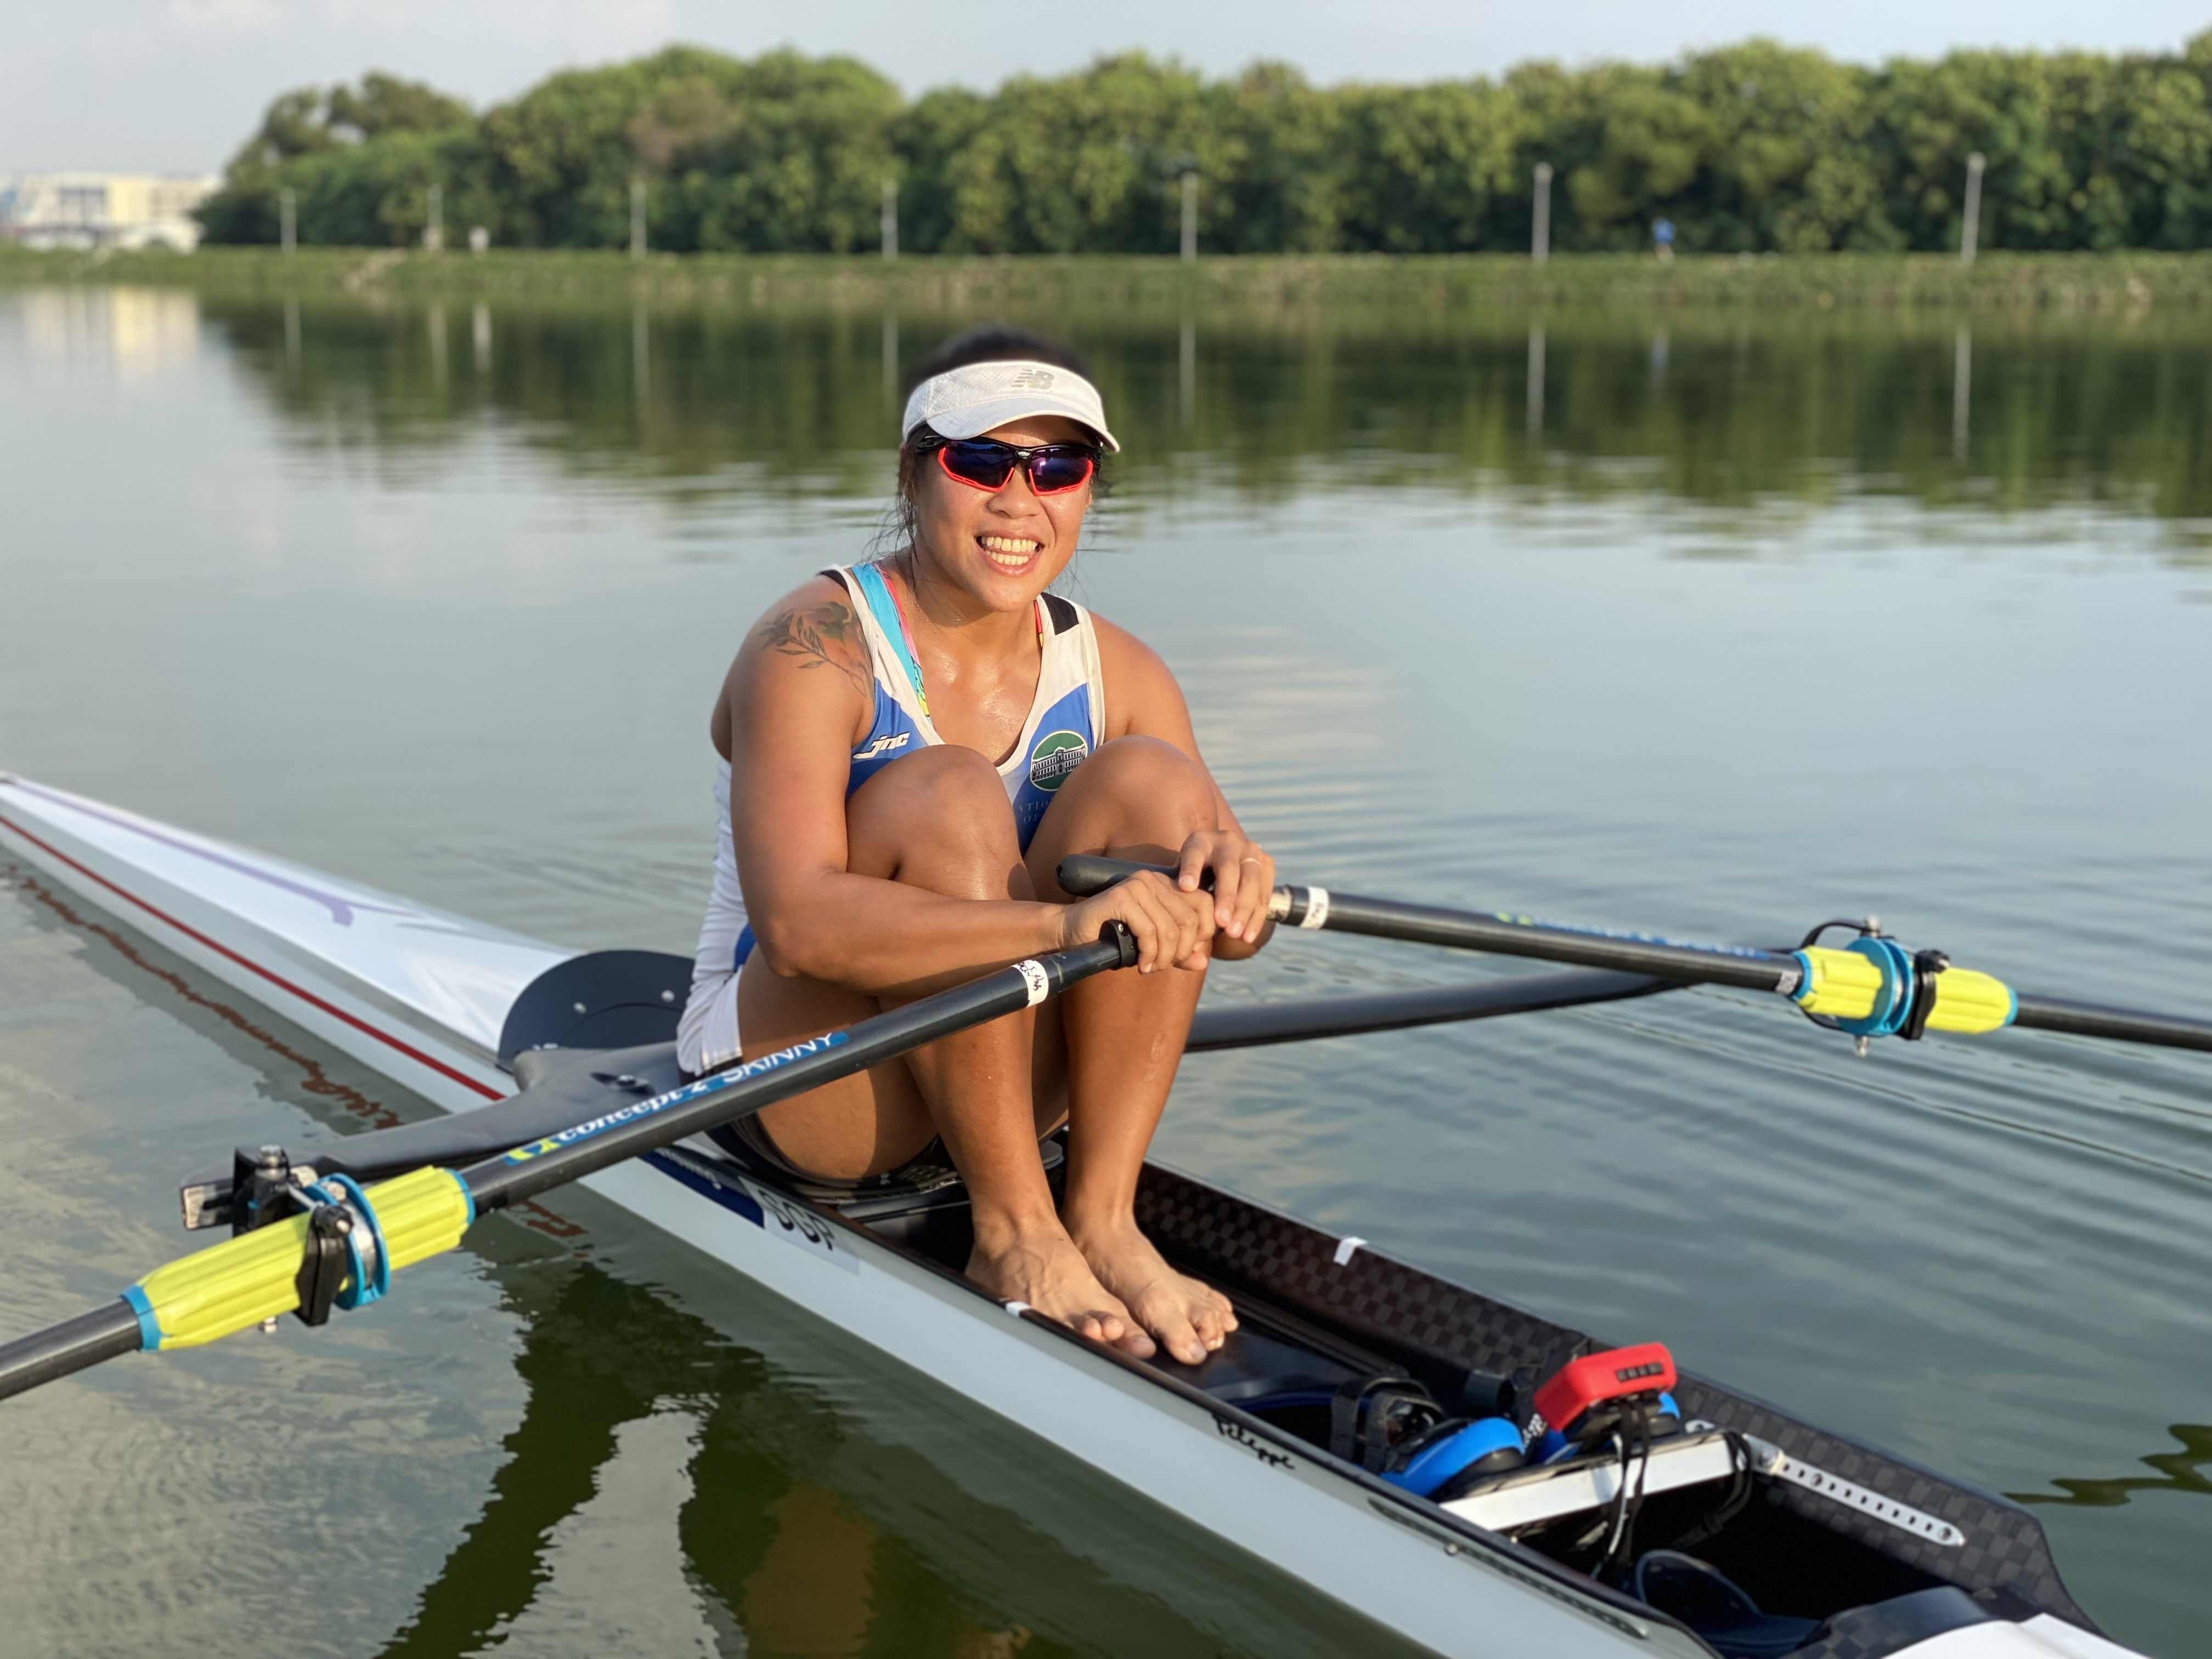 TeamSG Rower Joan Poh : I hope to use my Olympic debut to help inspire and groom the next generation of rowers for the nation!